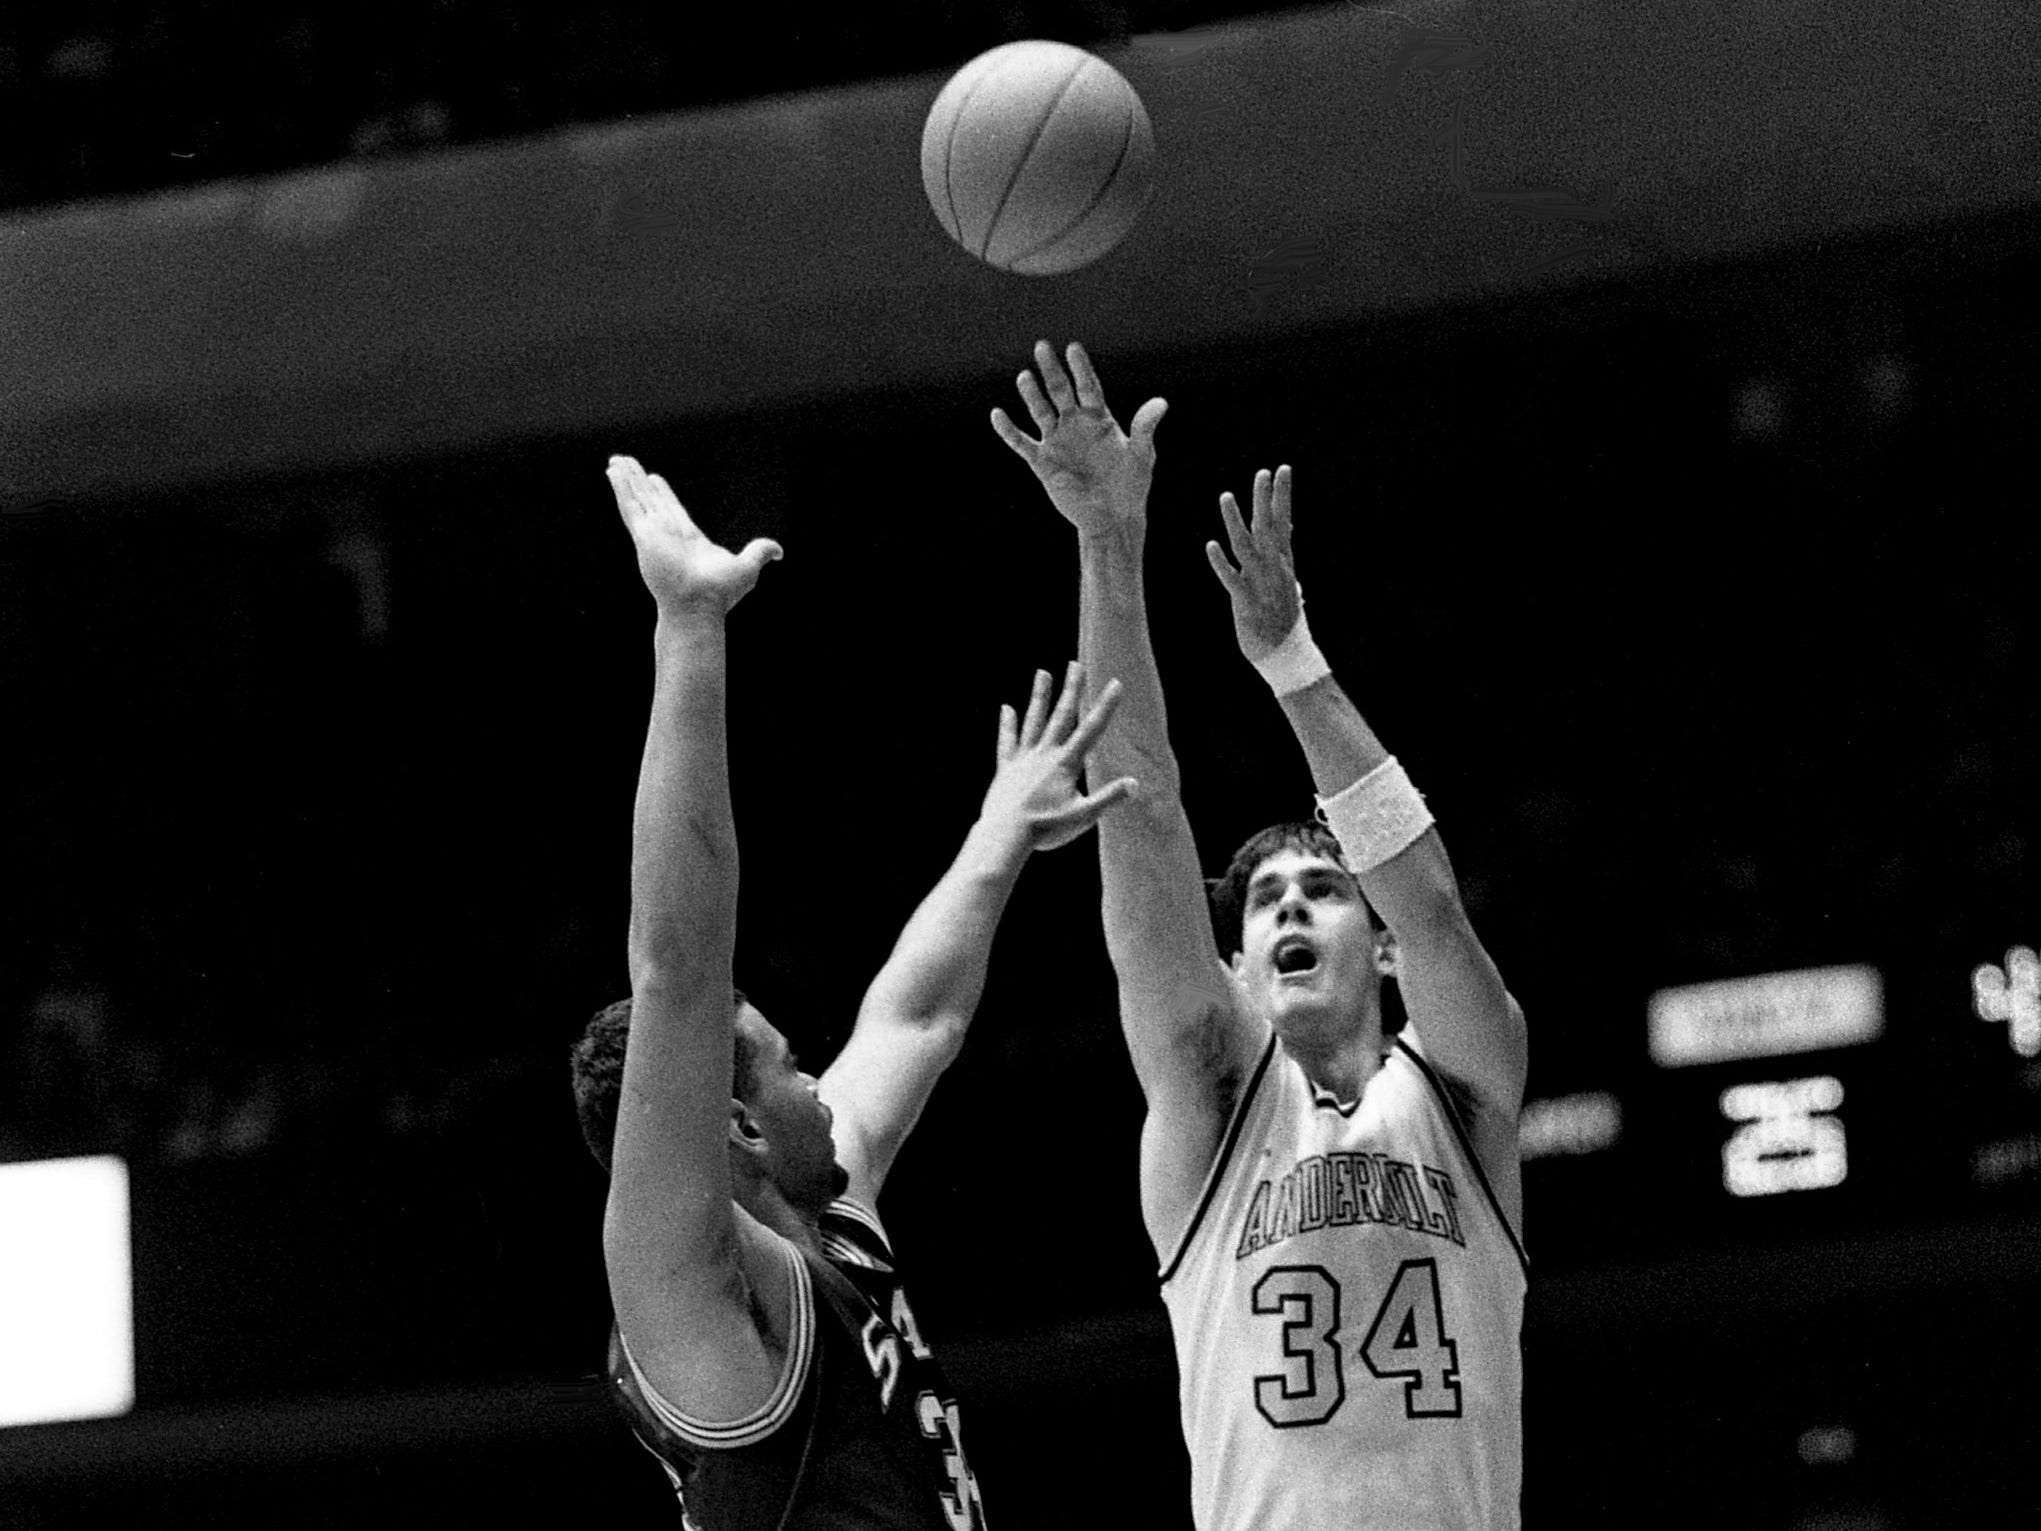 Vanderbilt senior Frank Kornet (34) takes a shot against Mississippi State in their 77-58 victory before 15,646 fans at Memorial Gym on March 1, 1989. Kornet, who played his last regular season game, led the team with 20 points.